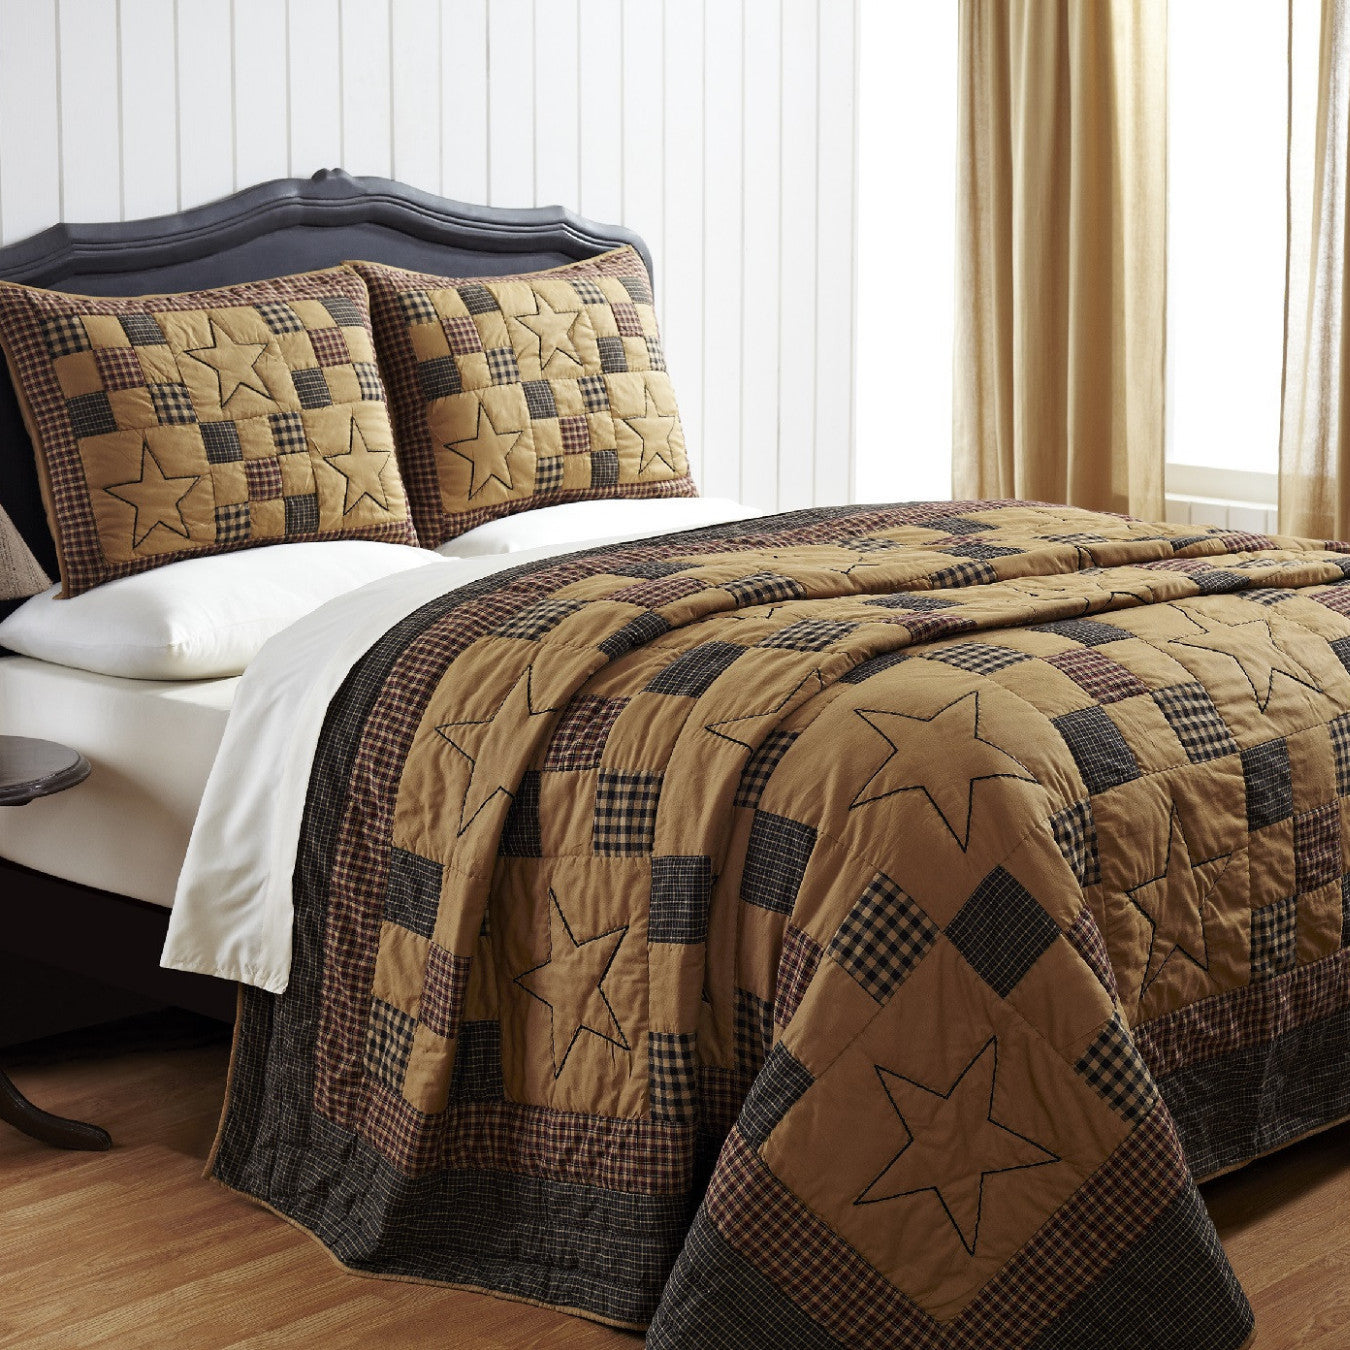 braden quilted bedding set  pc king – dl country barn - braden quilt set  king or queen